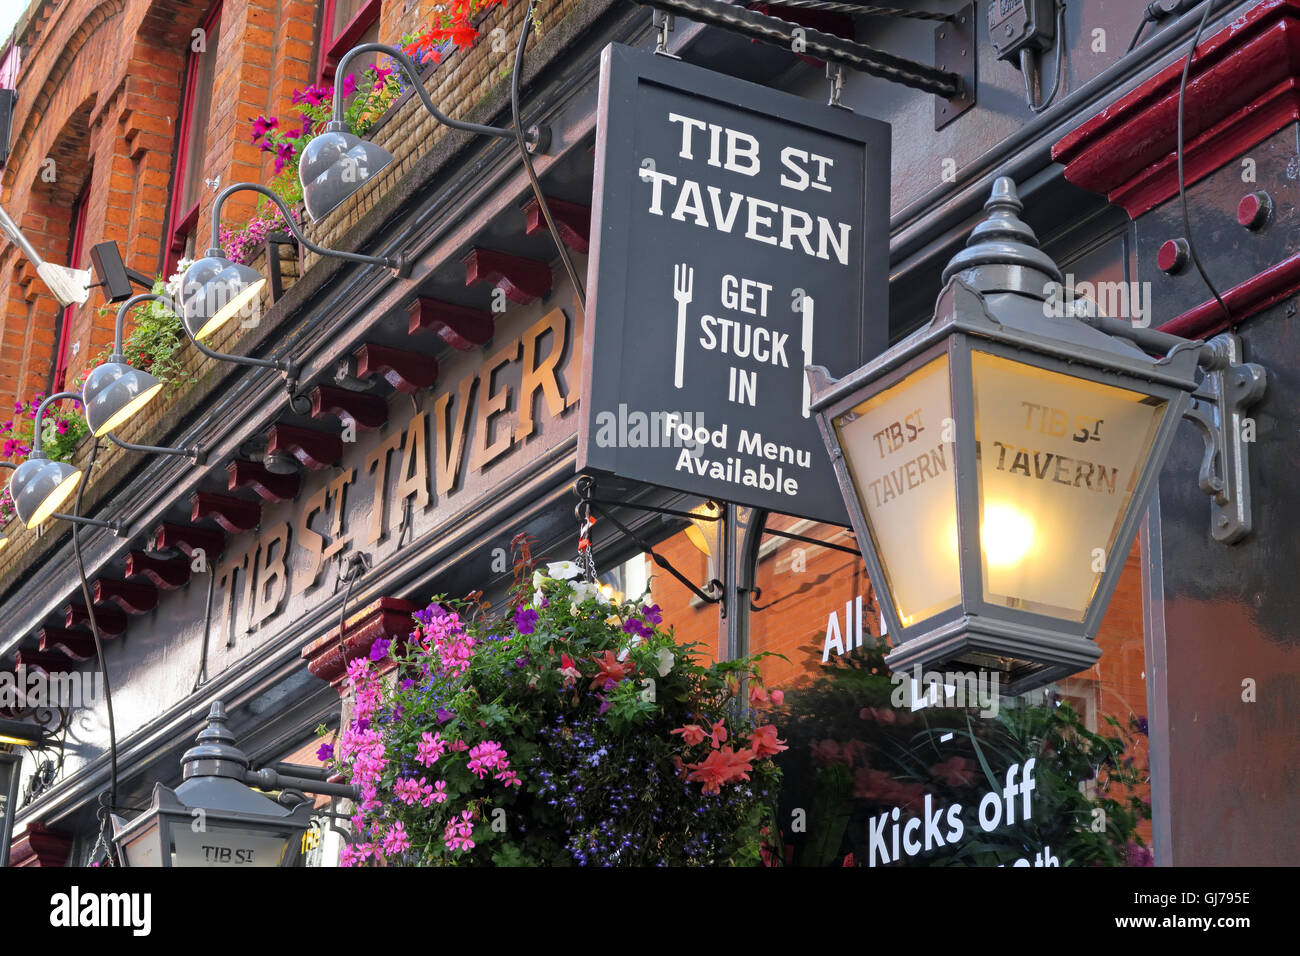 The Tib St Tavern, Northern Quarter, 74 Tib St, Manchester, North West England, UK,  M4 1LG - Stock Image